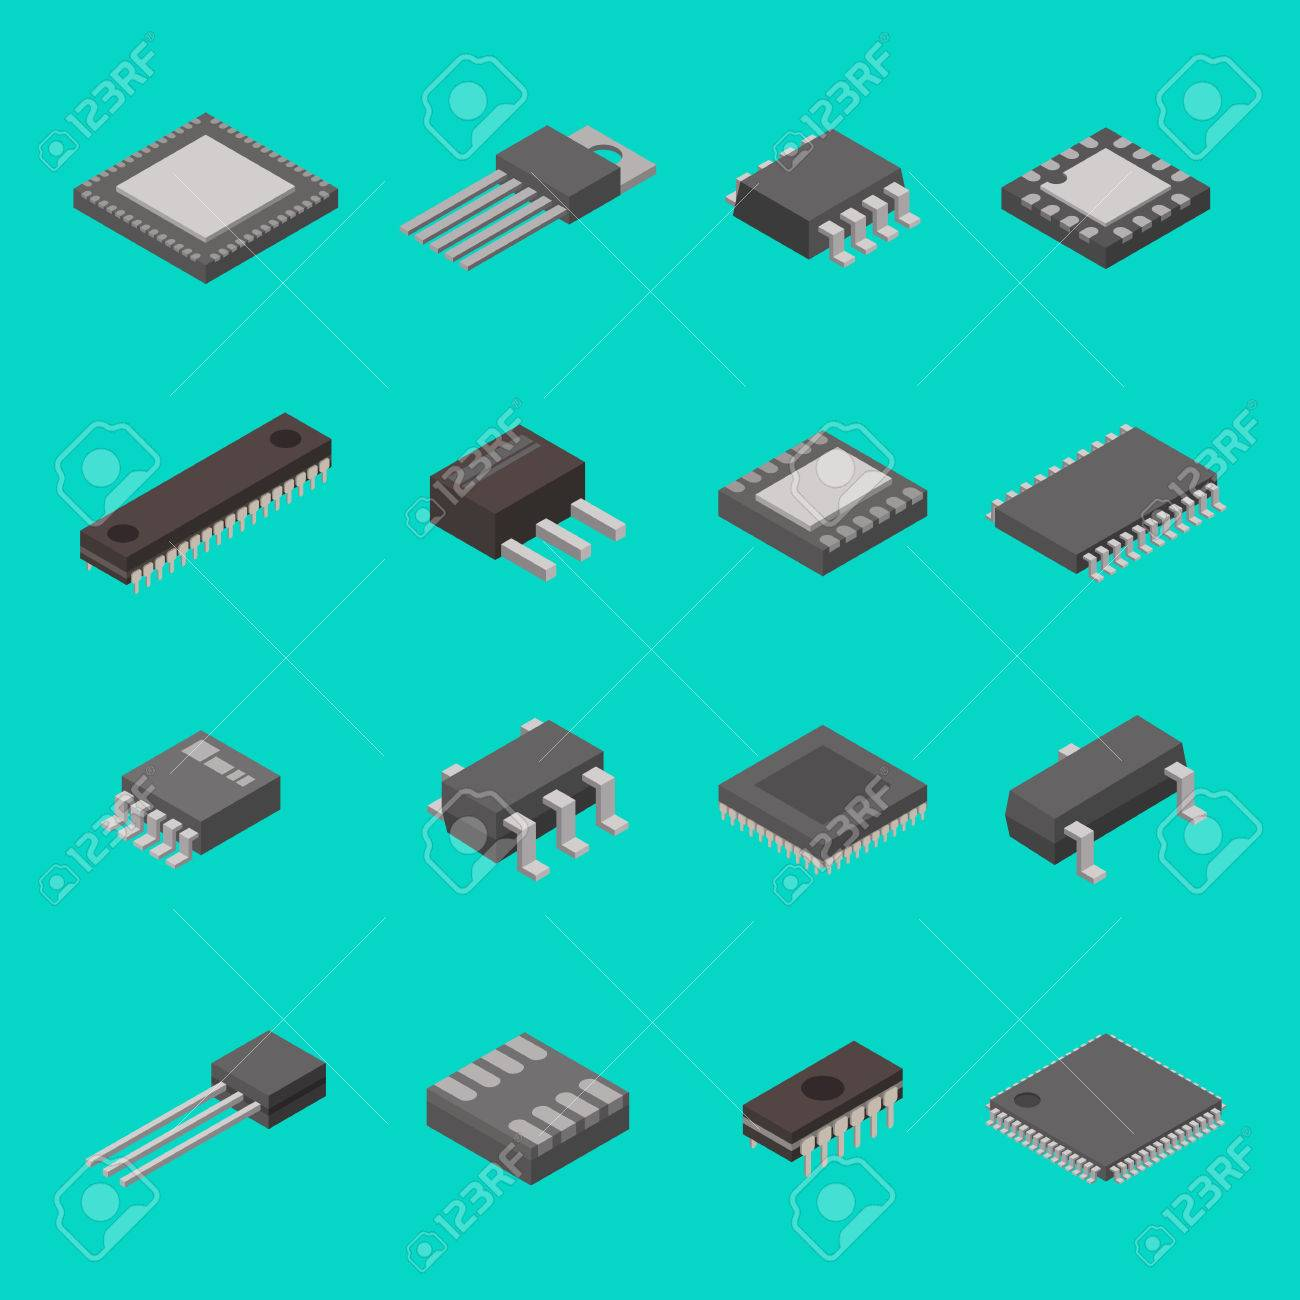 Isolated microchip semiconductor computer electronic components isometric icons vector illustration - 77664920